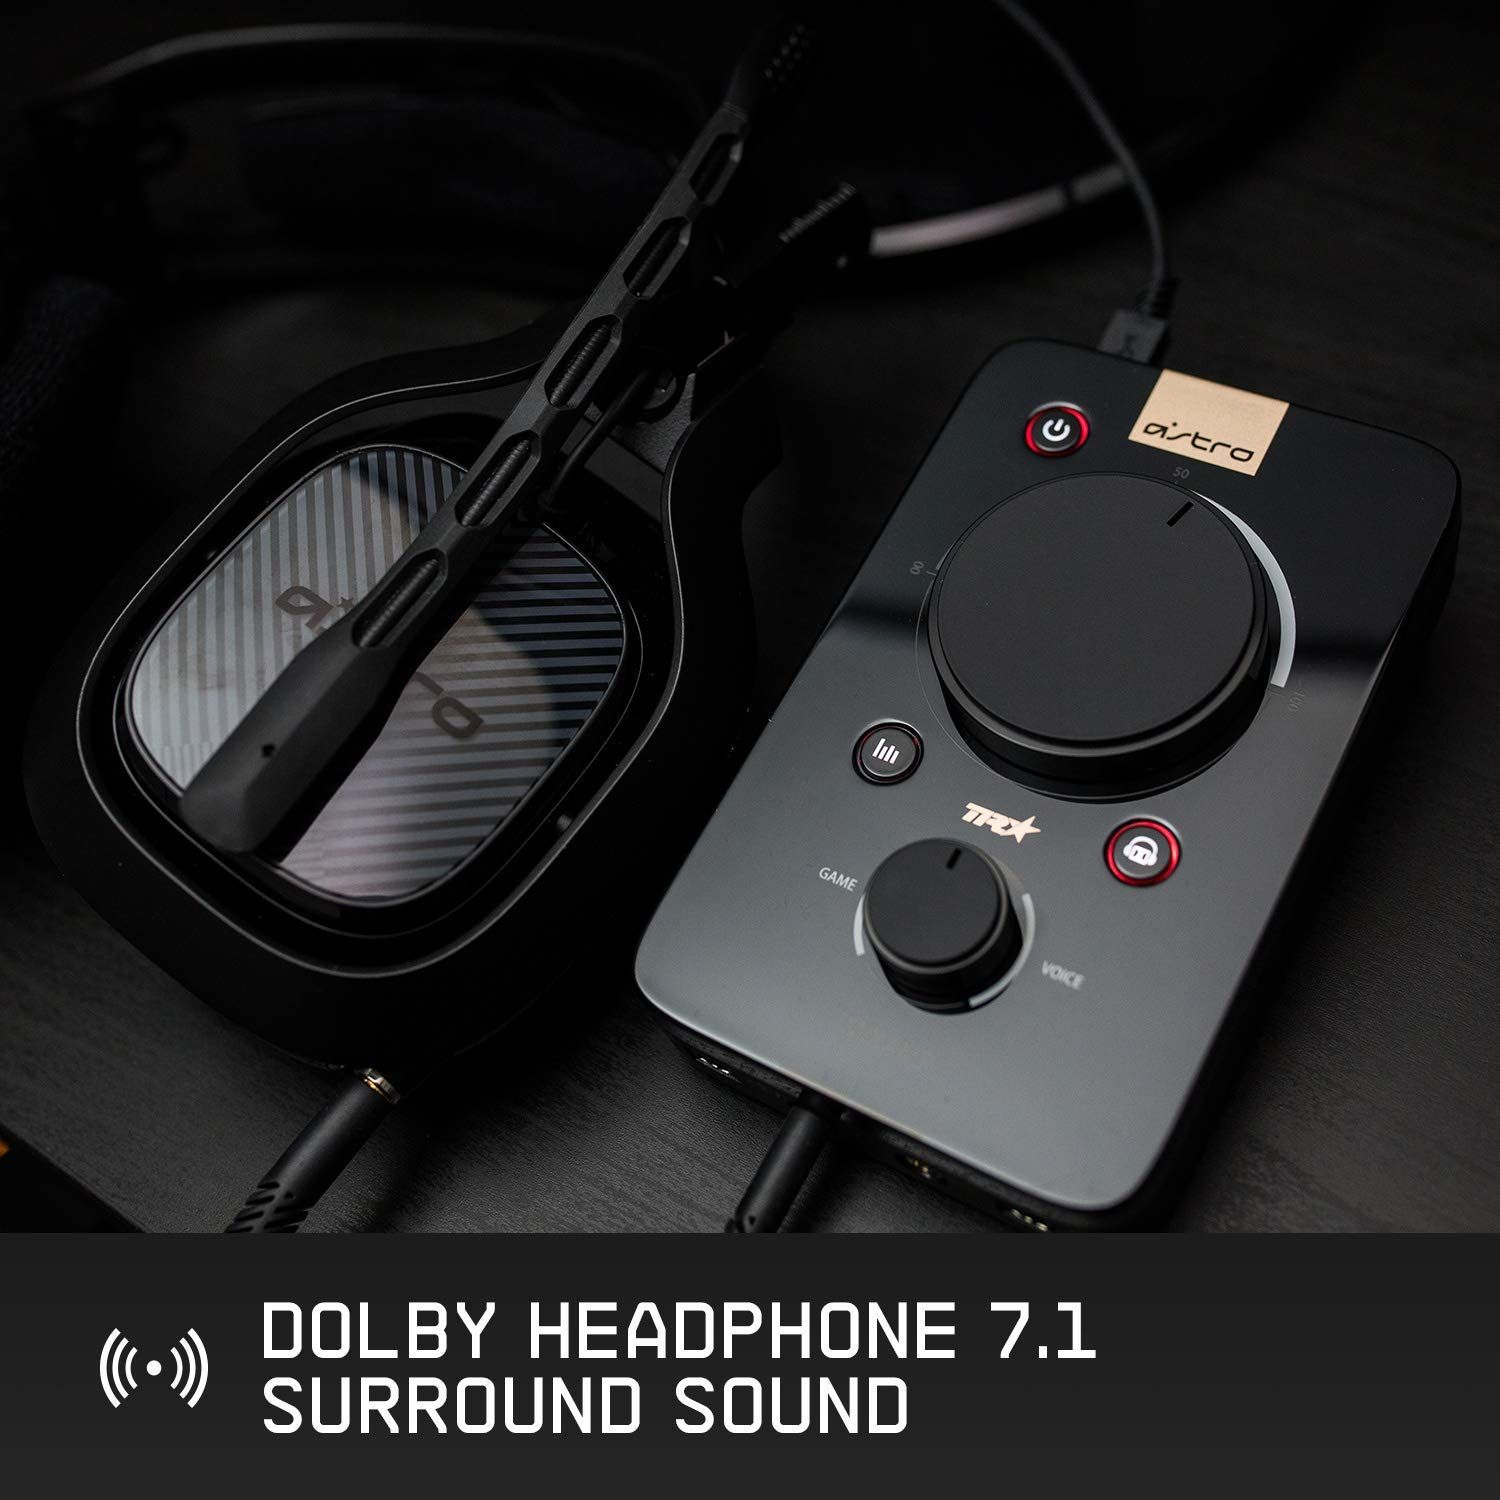 2channel dolby surround sound customizable stream output